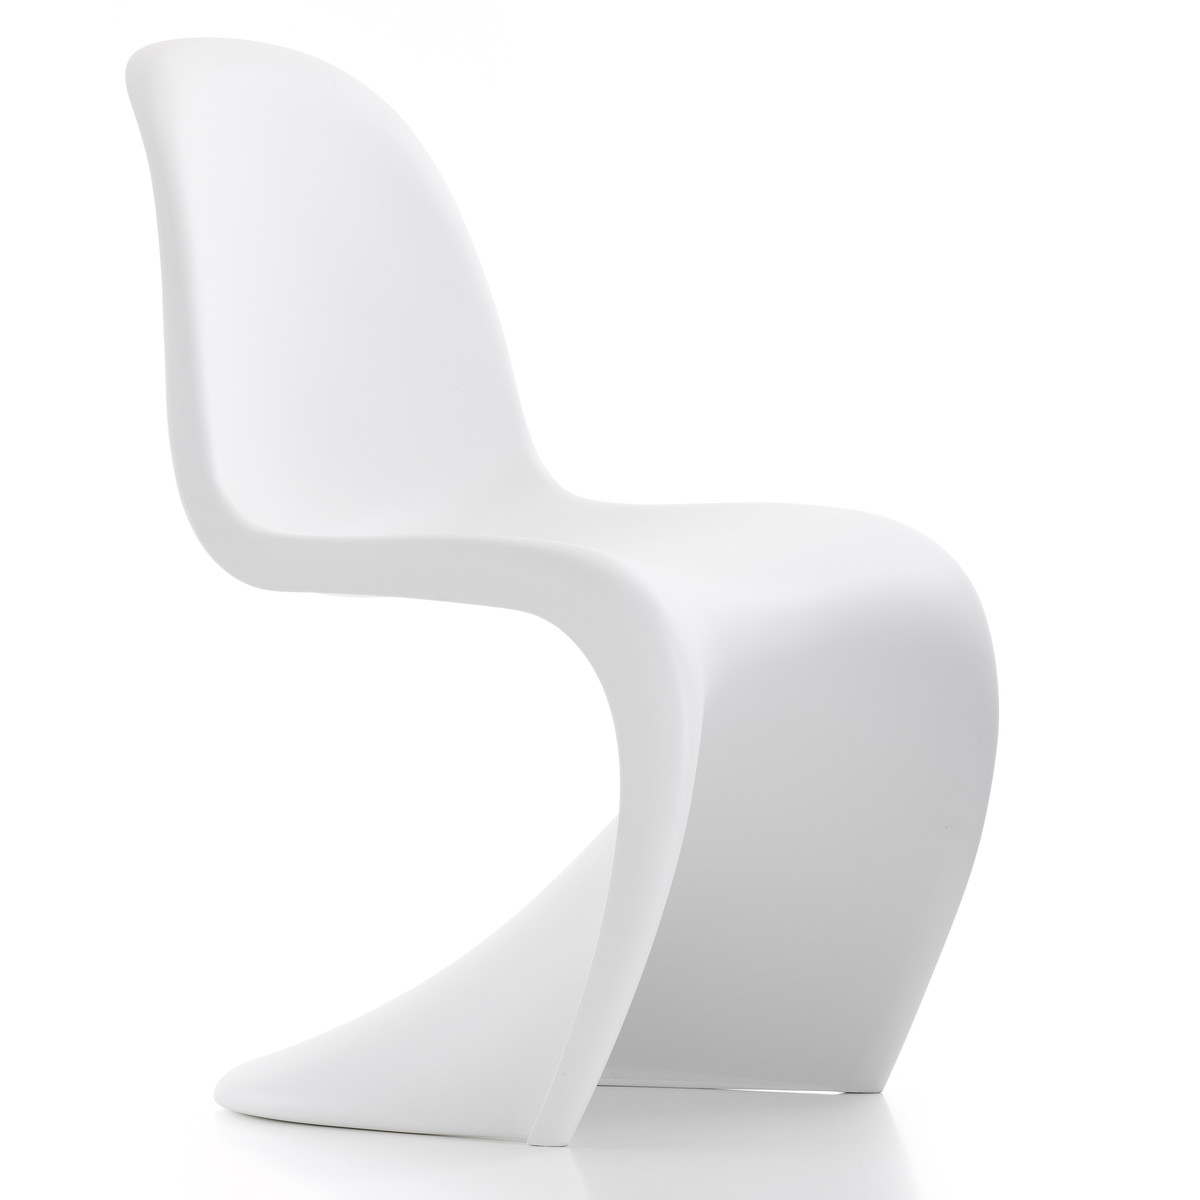 Eames Chair Weiß Panton-chair-weiss-frontal - Arthur Holm